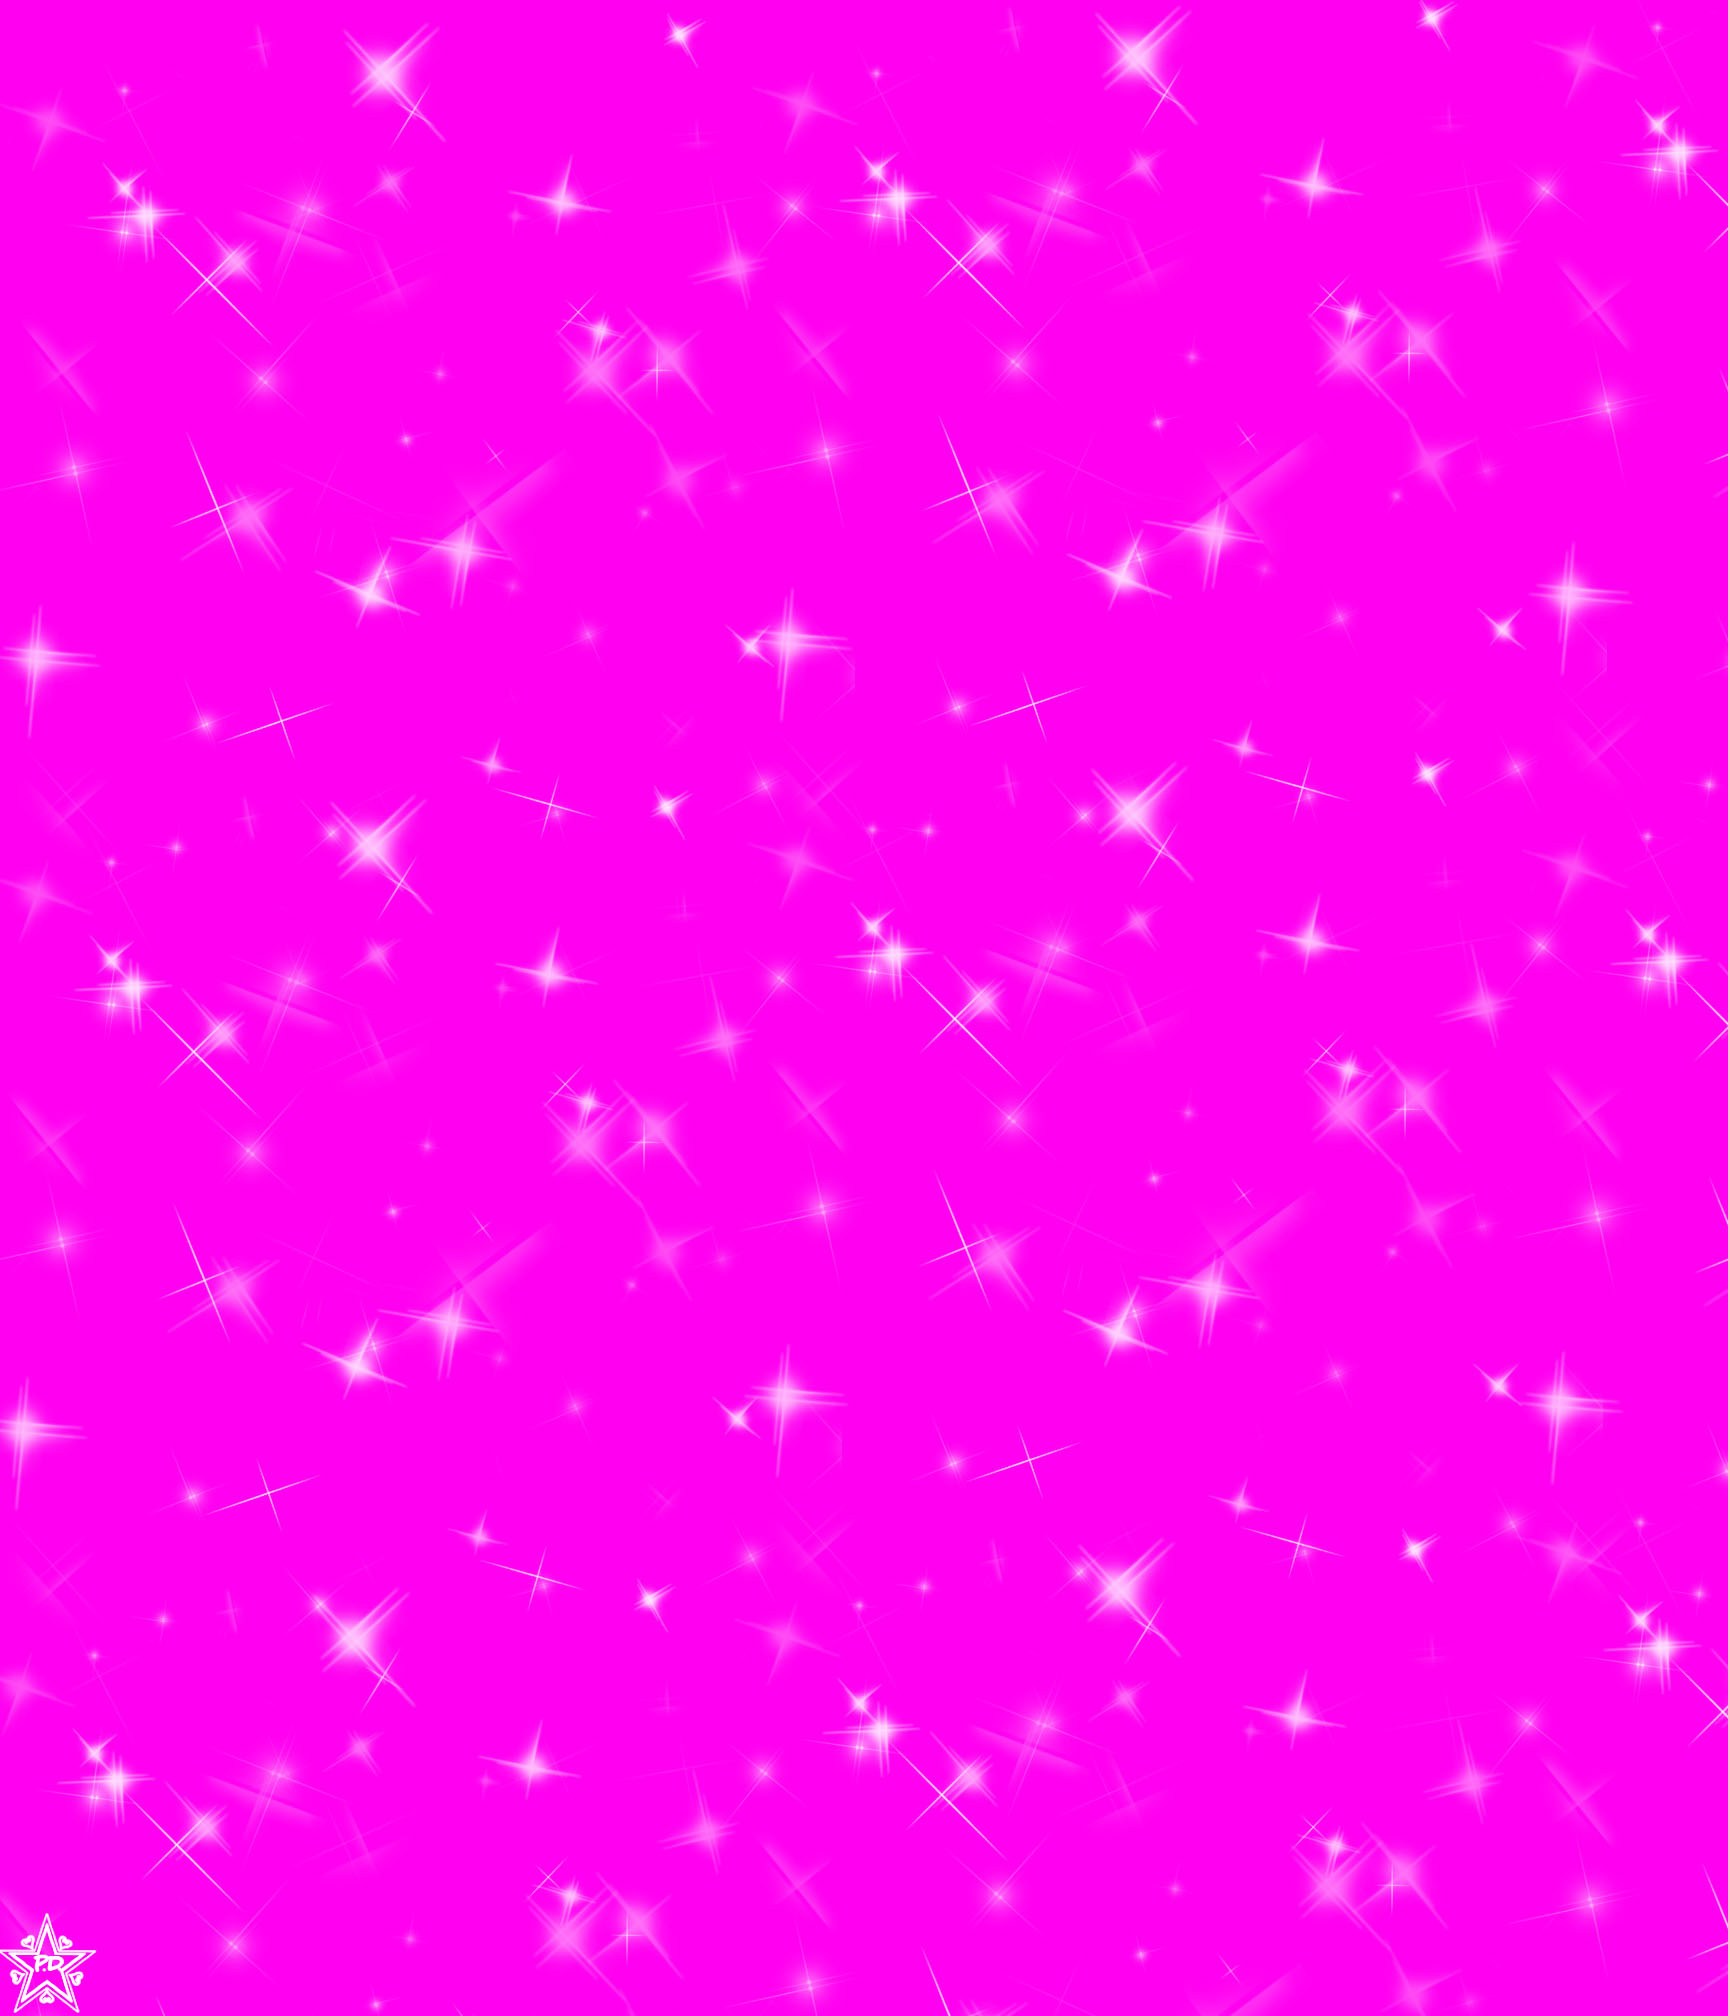 Hot pink neon background